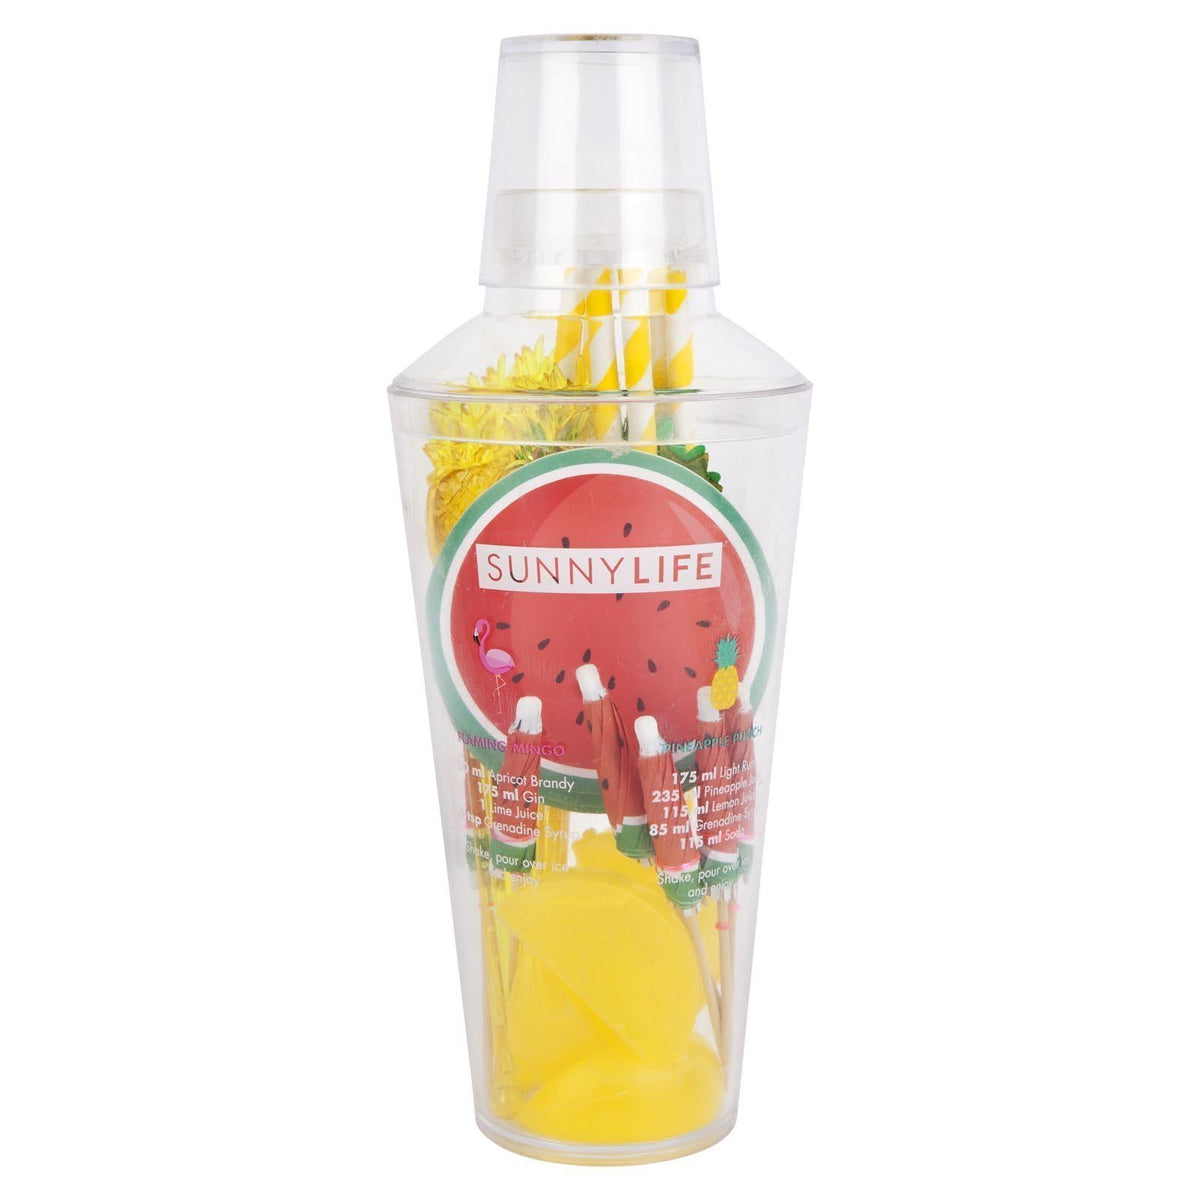 Sunnylife | Cocktail Party Kit | Fruit Salad